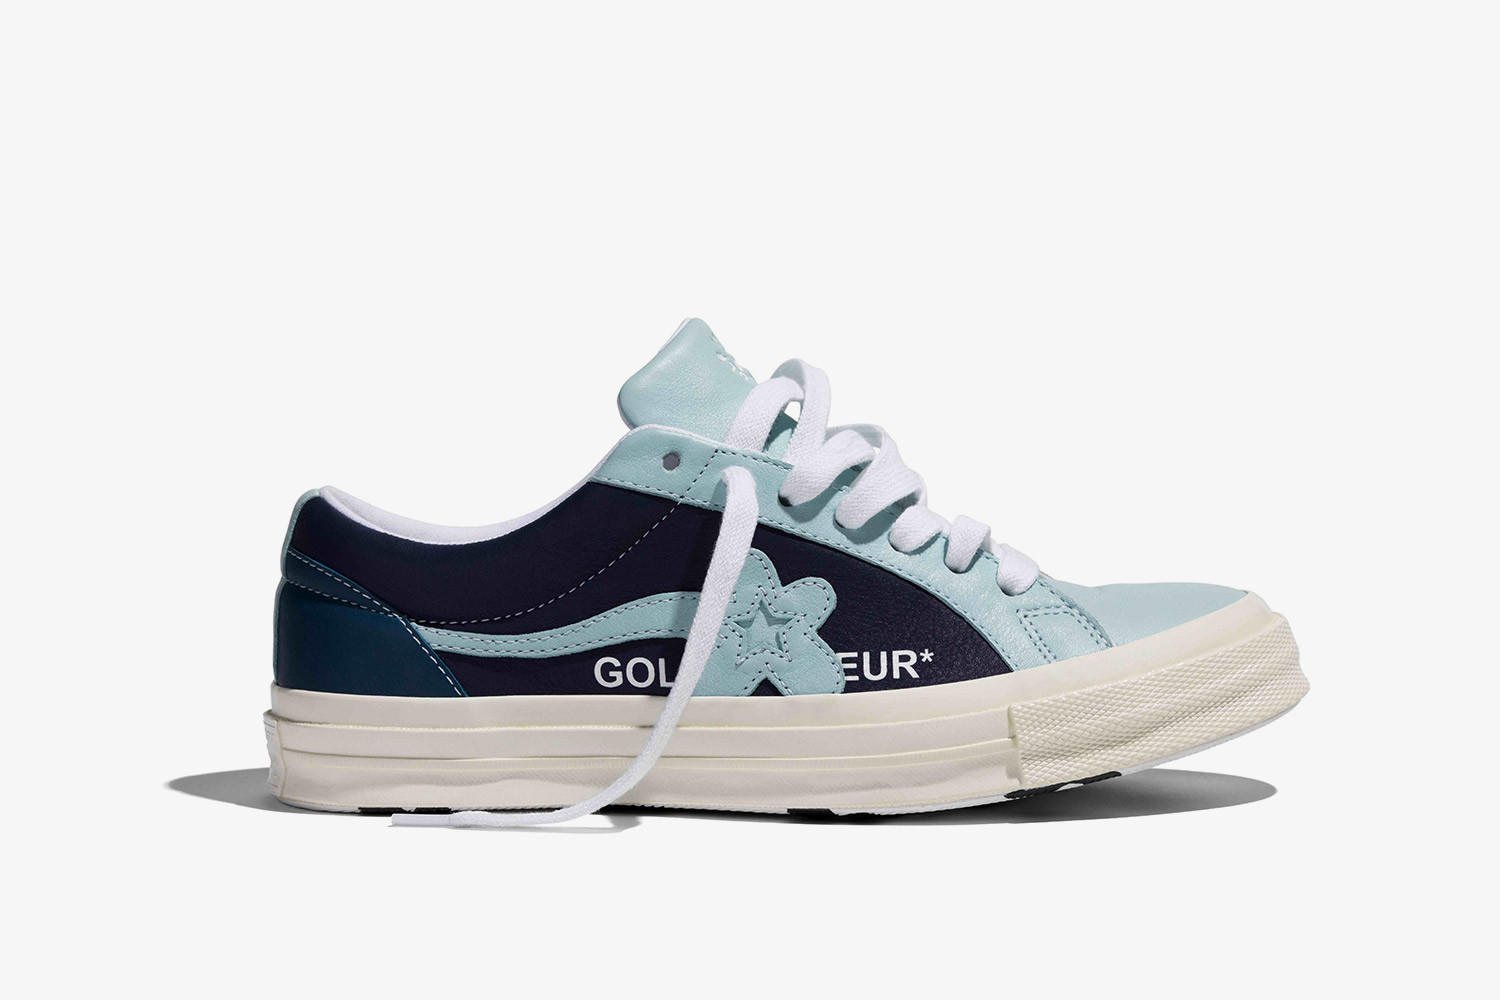 converse-golf-le-fleur-low-top-coming-soon-3